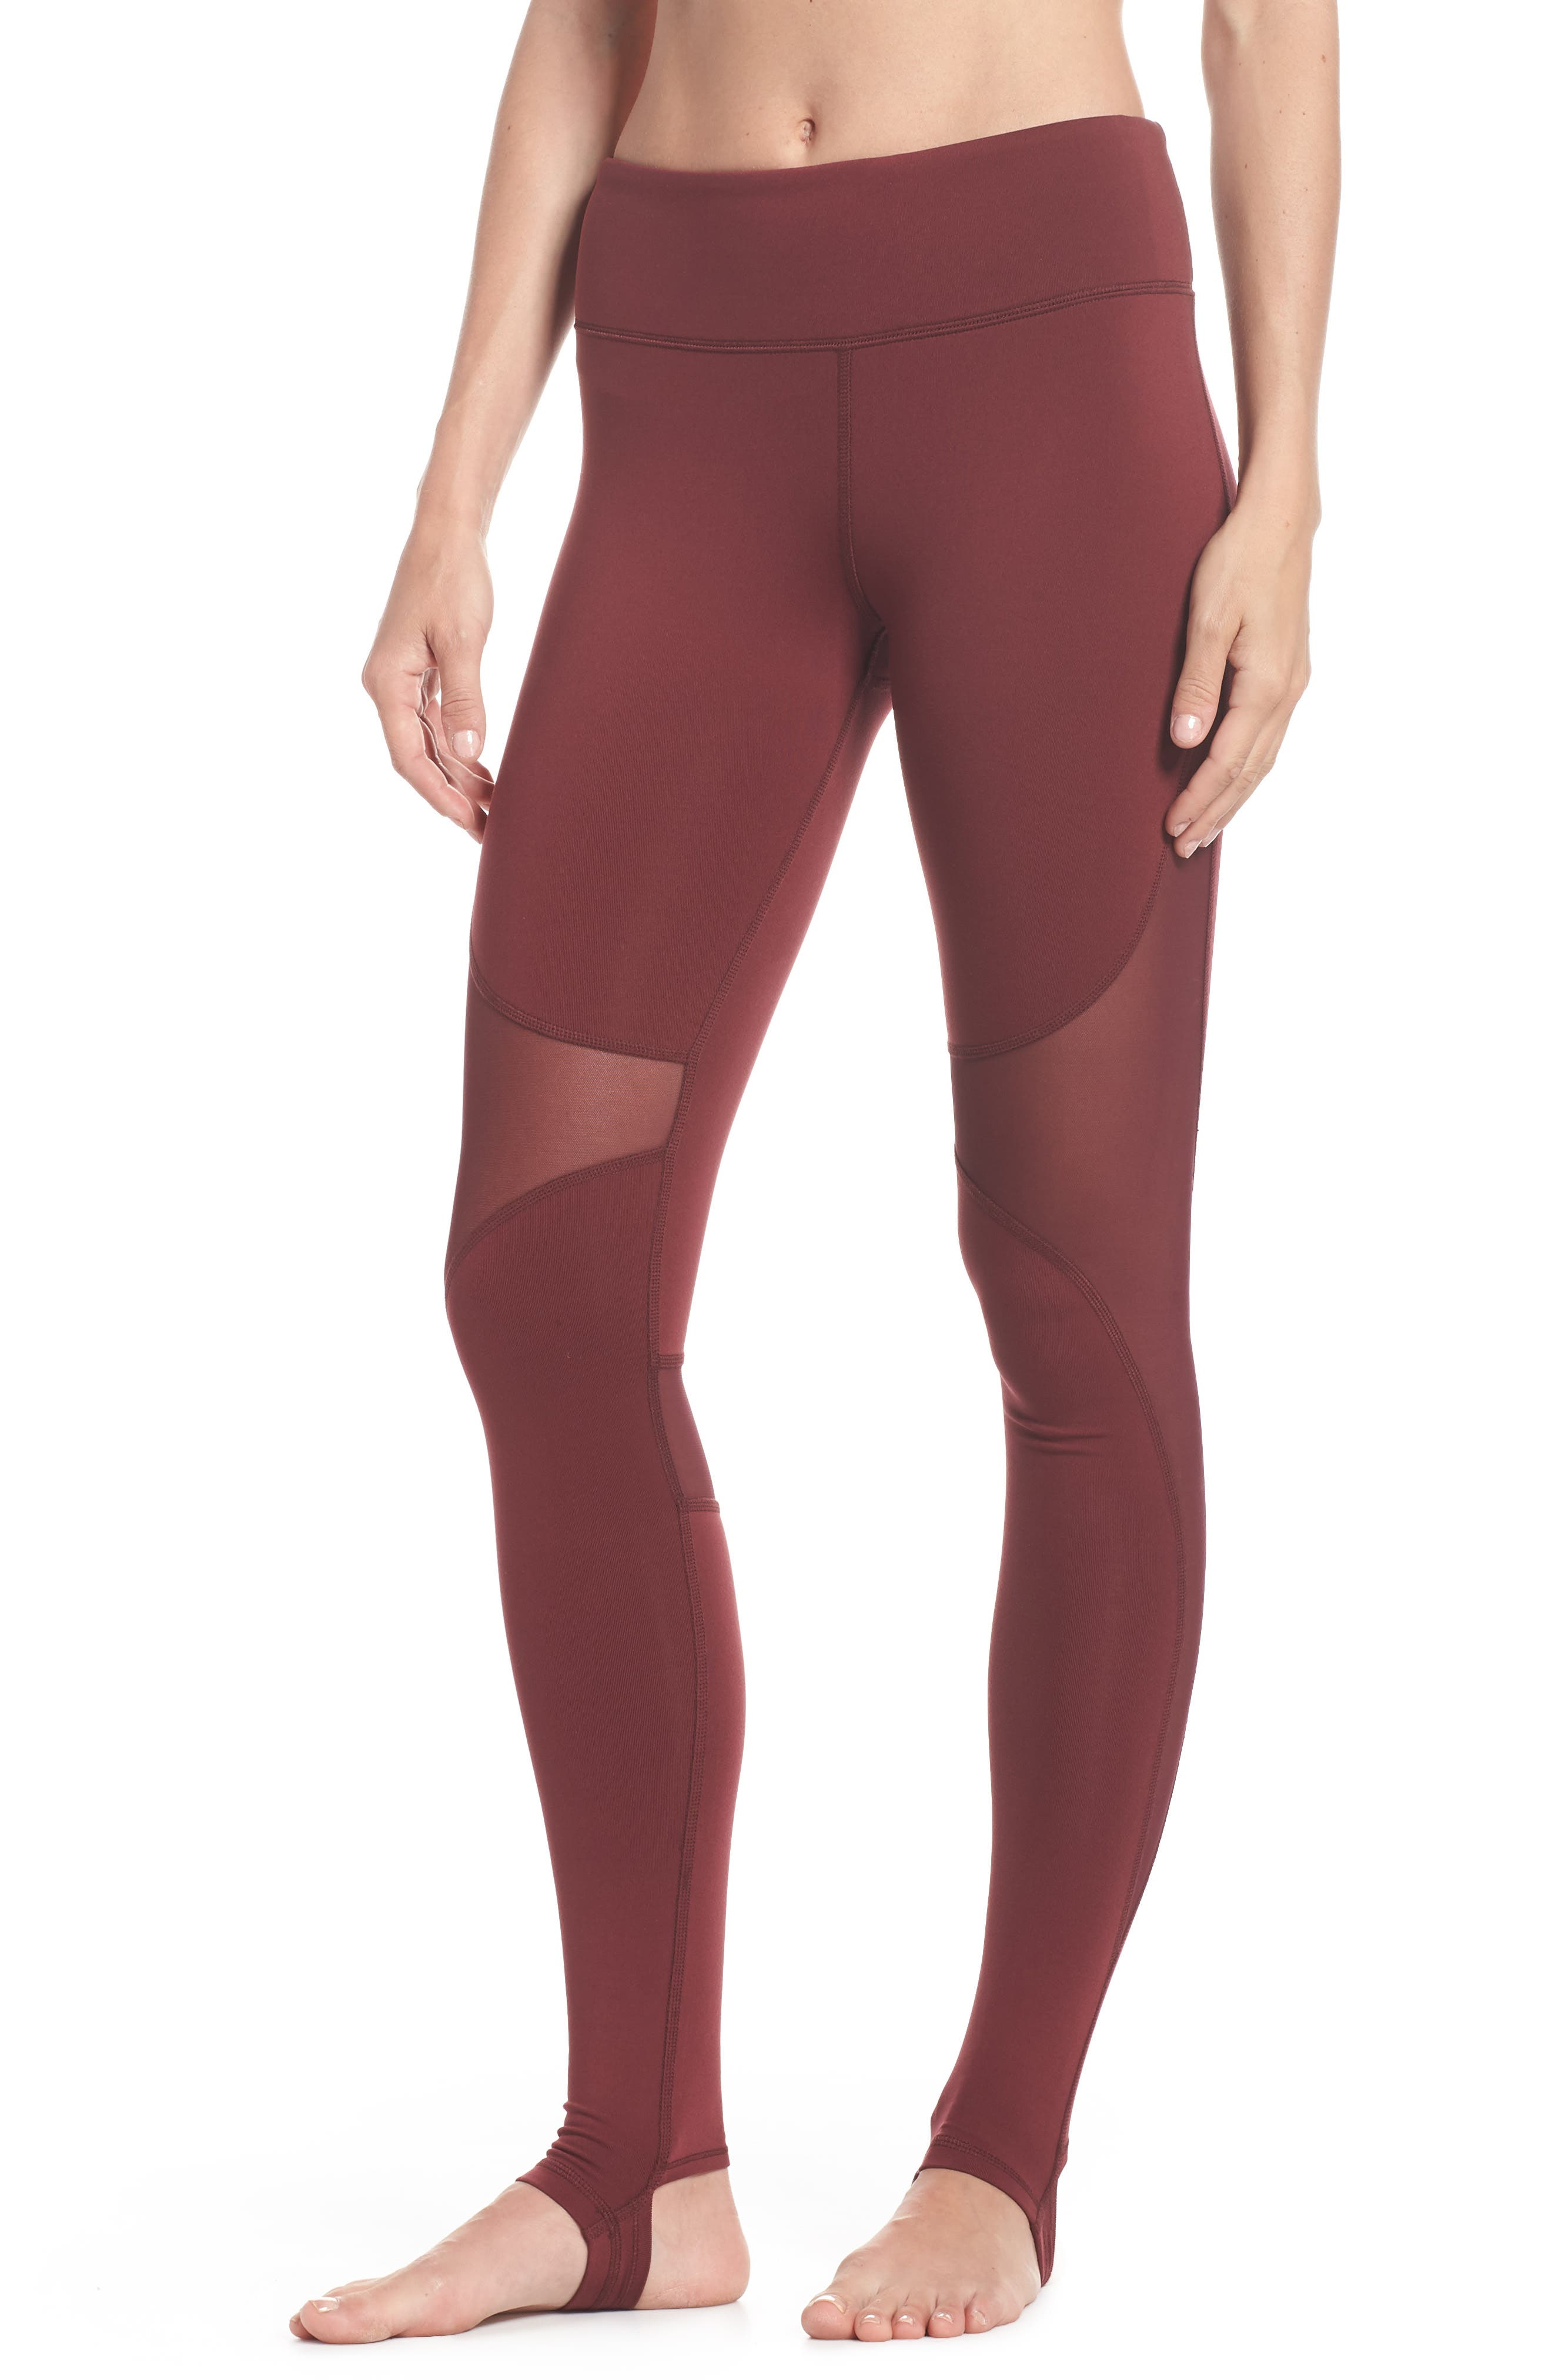 Coast High Waist Stirrup Leggings,                             Main thumbnail 1, color,                             936